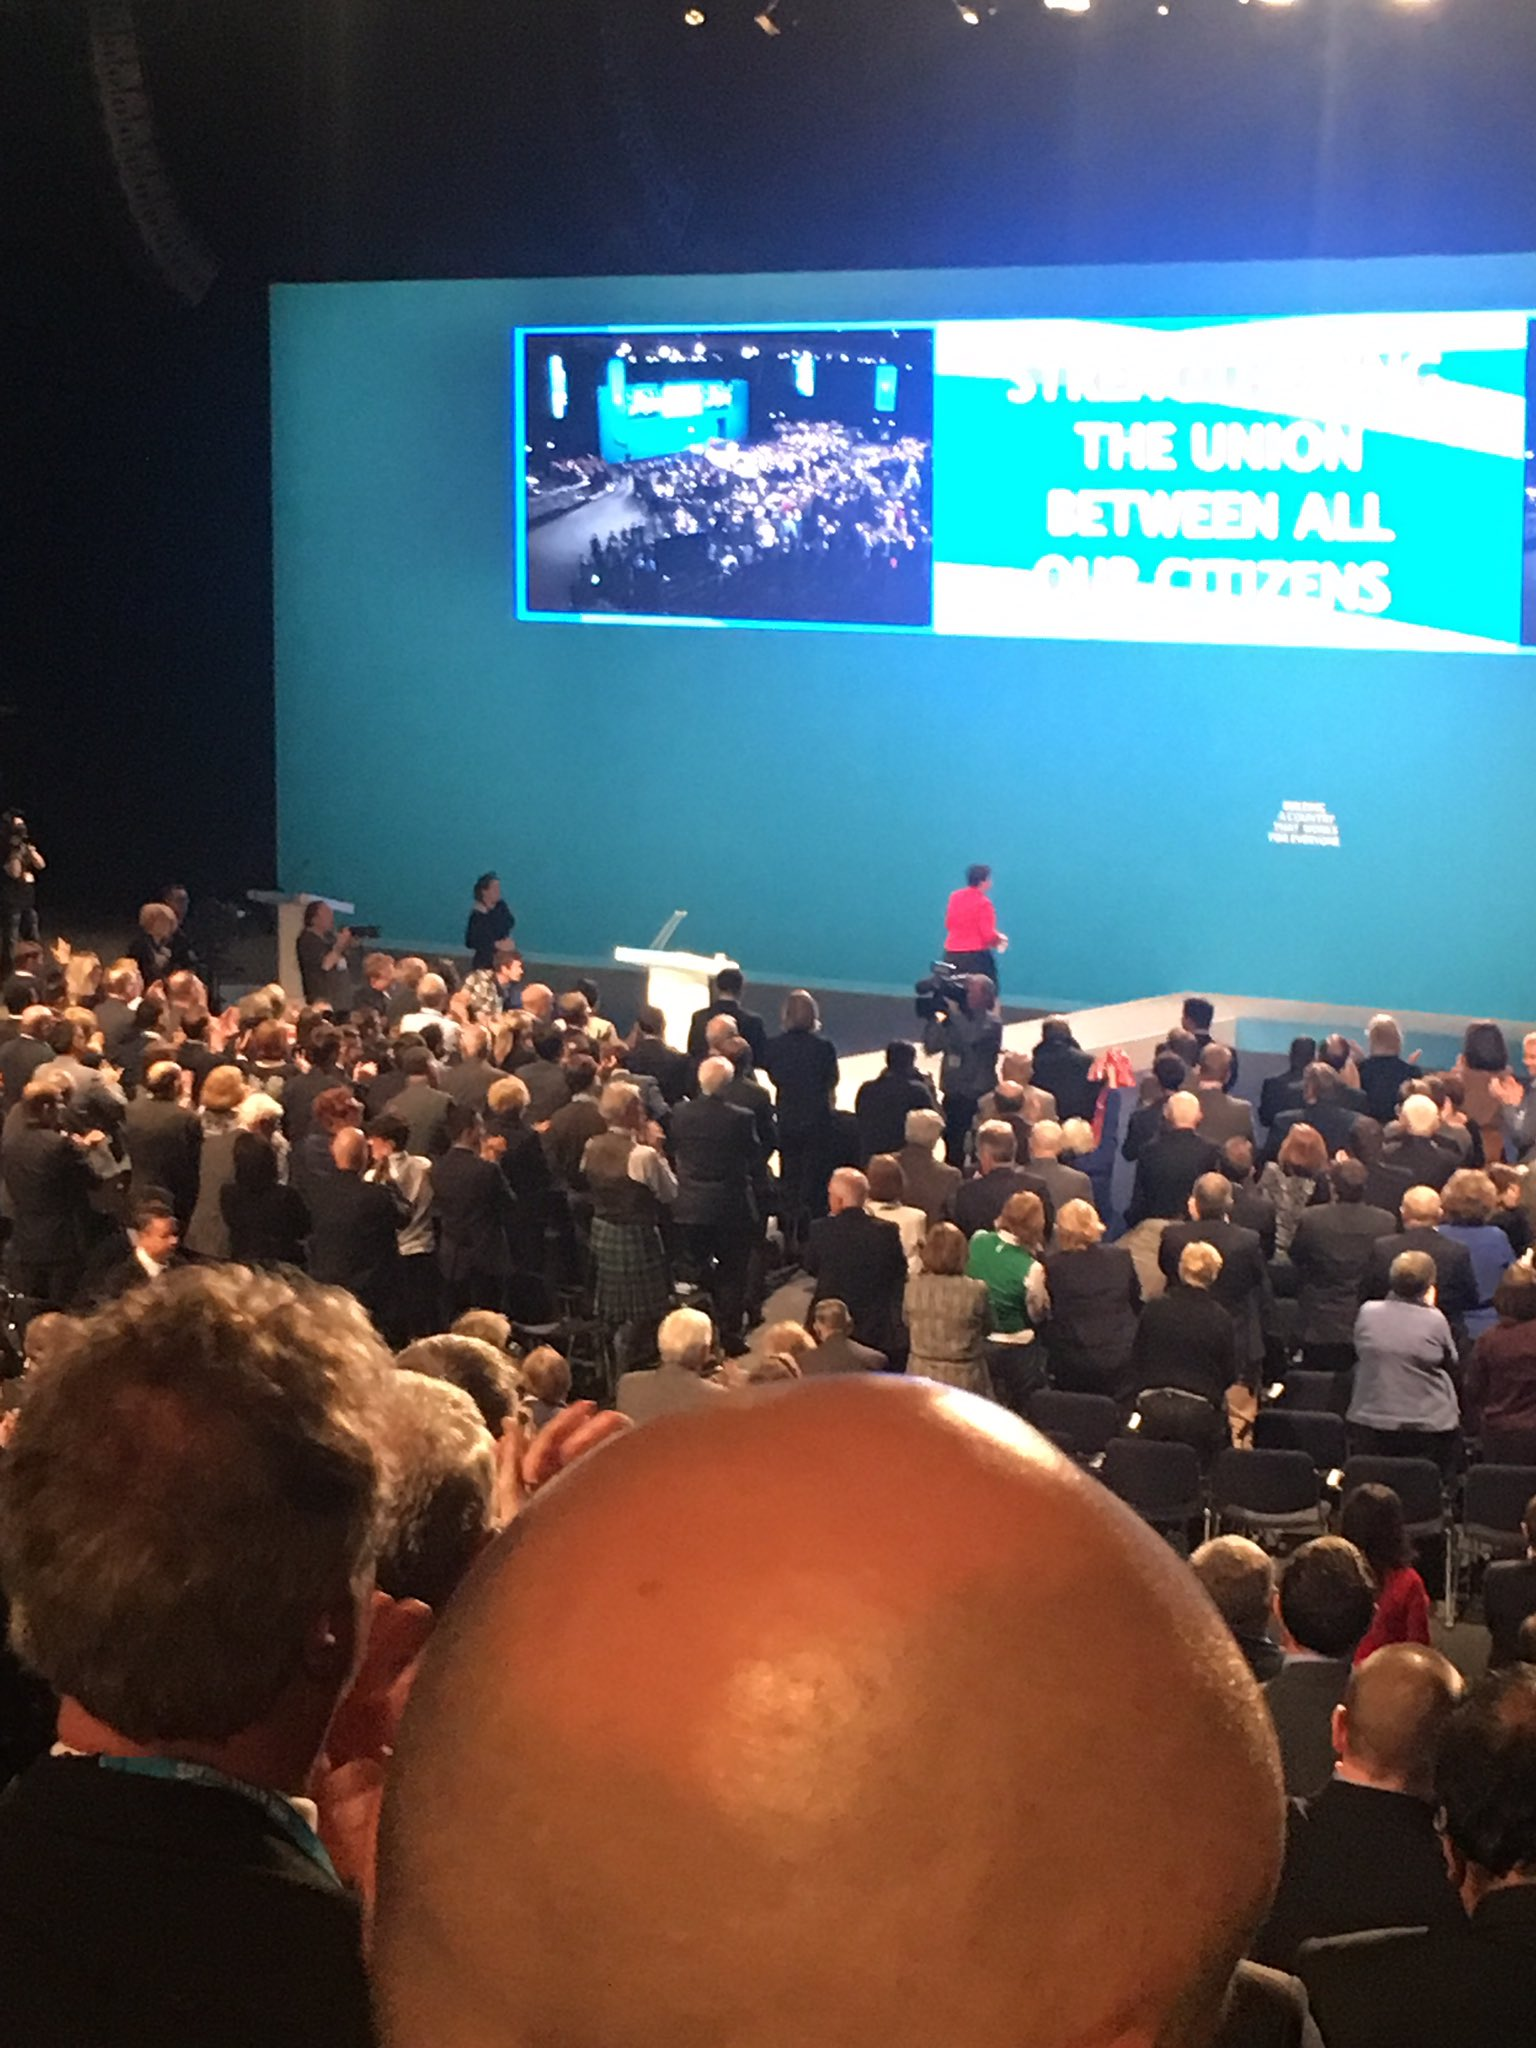 The star of Tory conference today was someone not in May's government https://t.co/WFkUVFF1ST